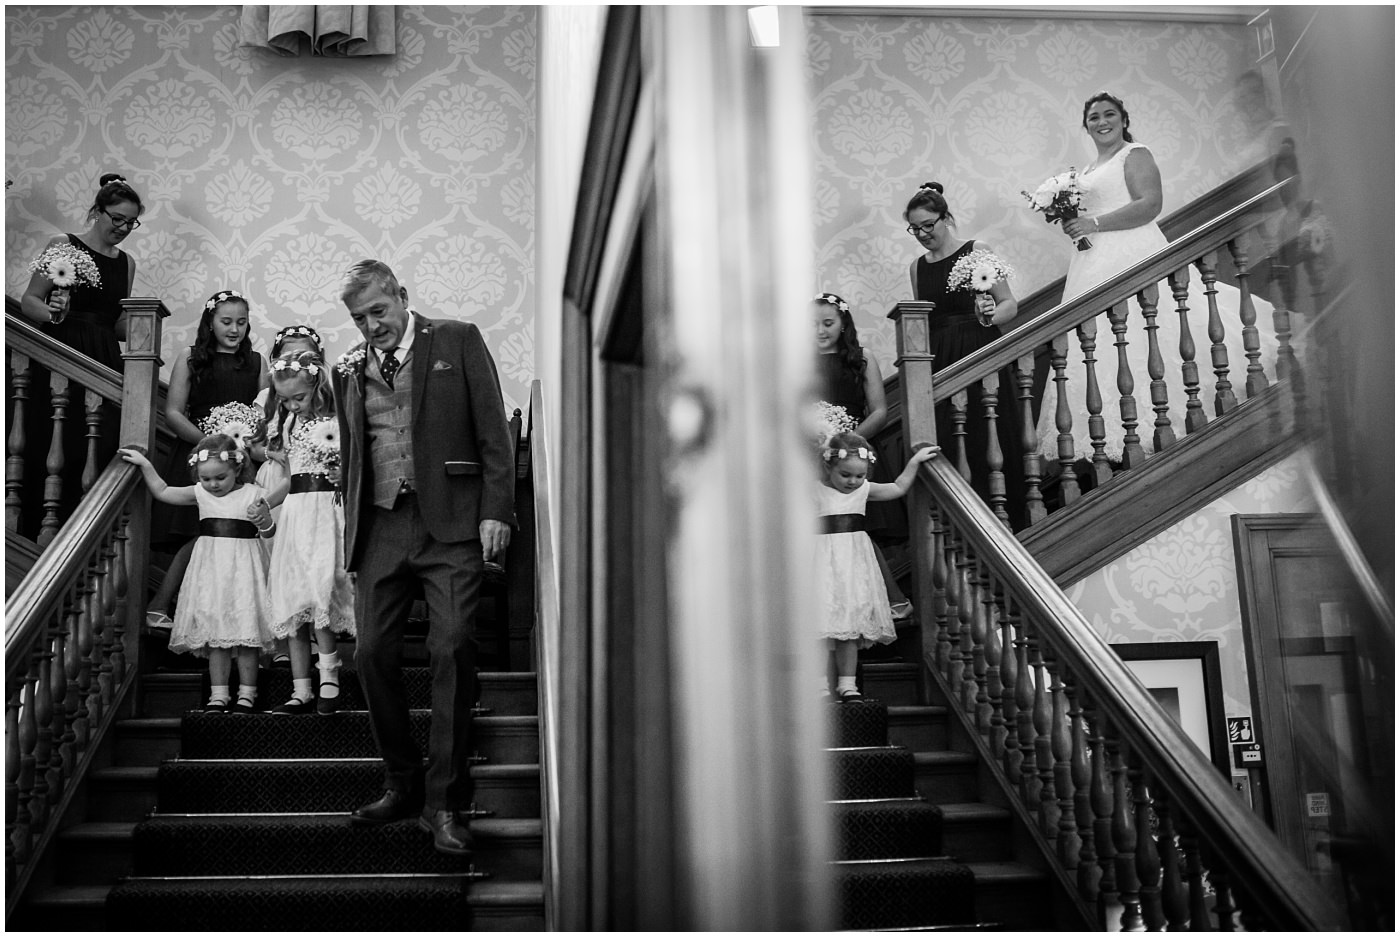 Father of the bride leads bridesmaids and bride downstairs